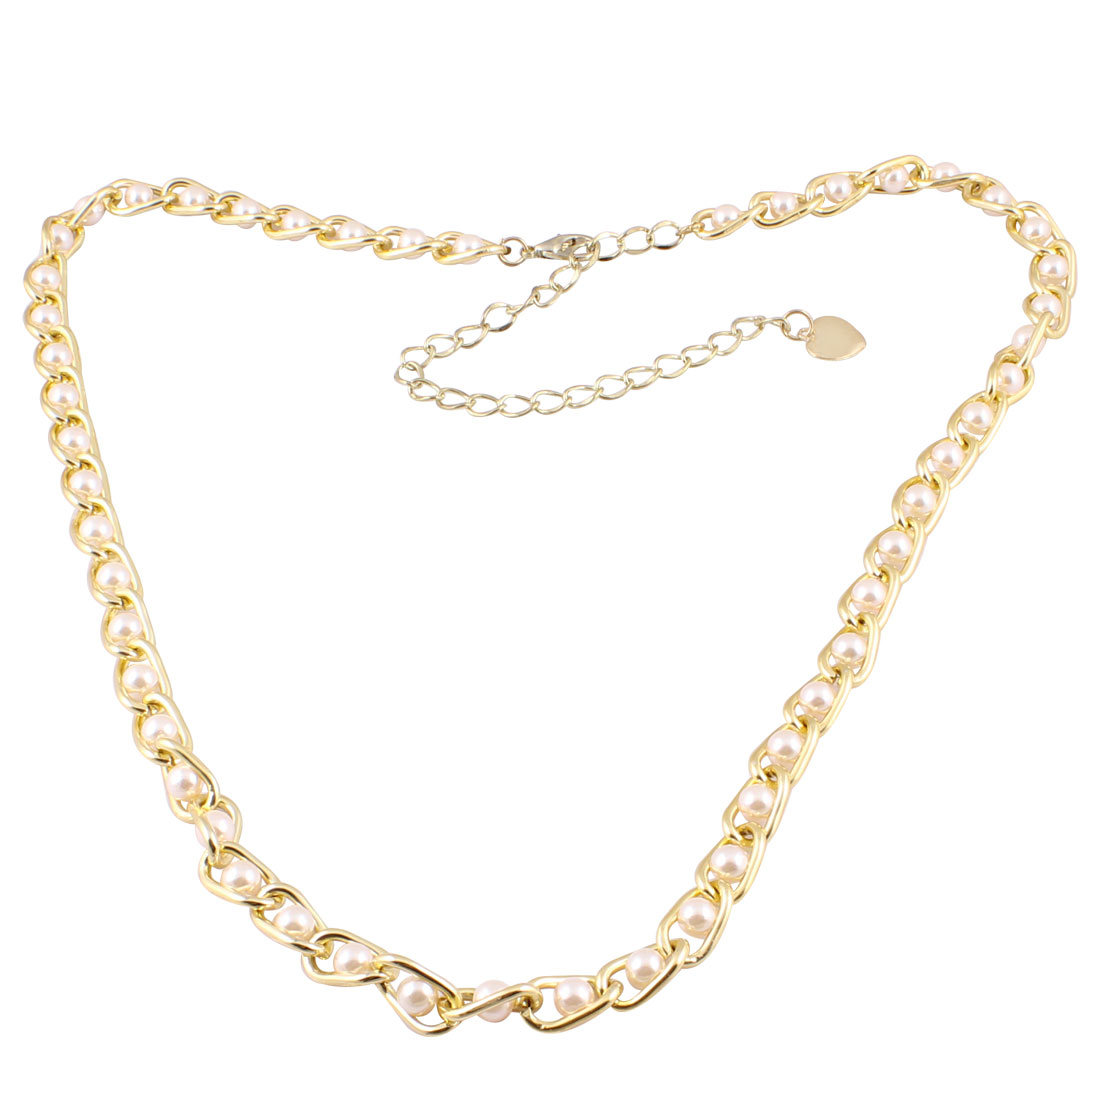 Lady Gold Tone Metallic Heart Dangle Curbchain Ivory Faux Pearl Decor Waist Chain New